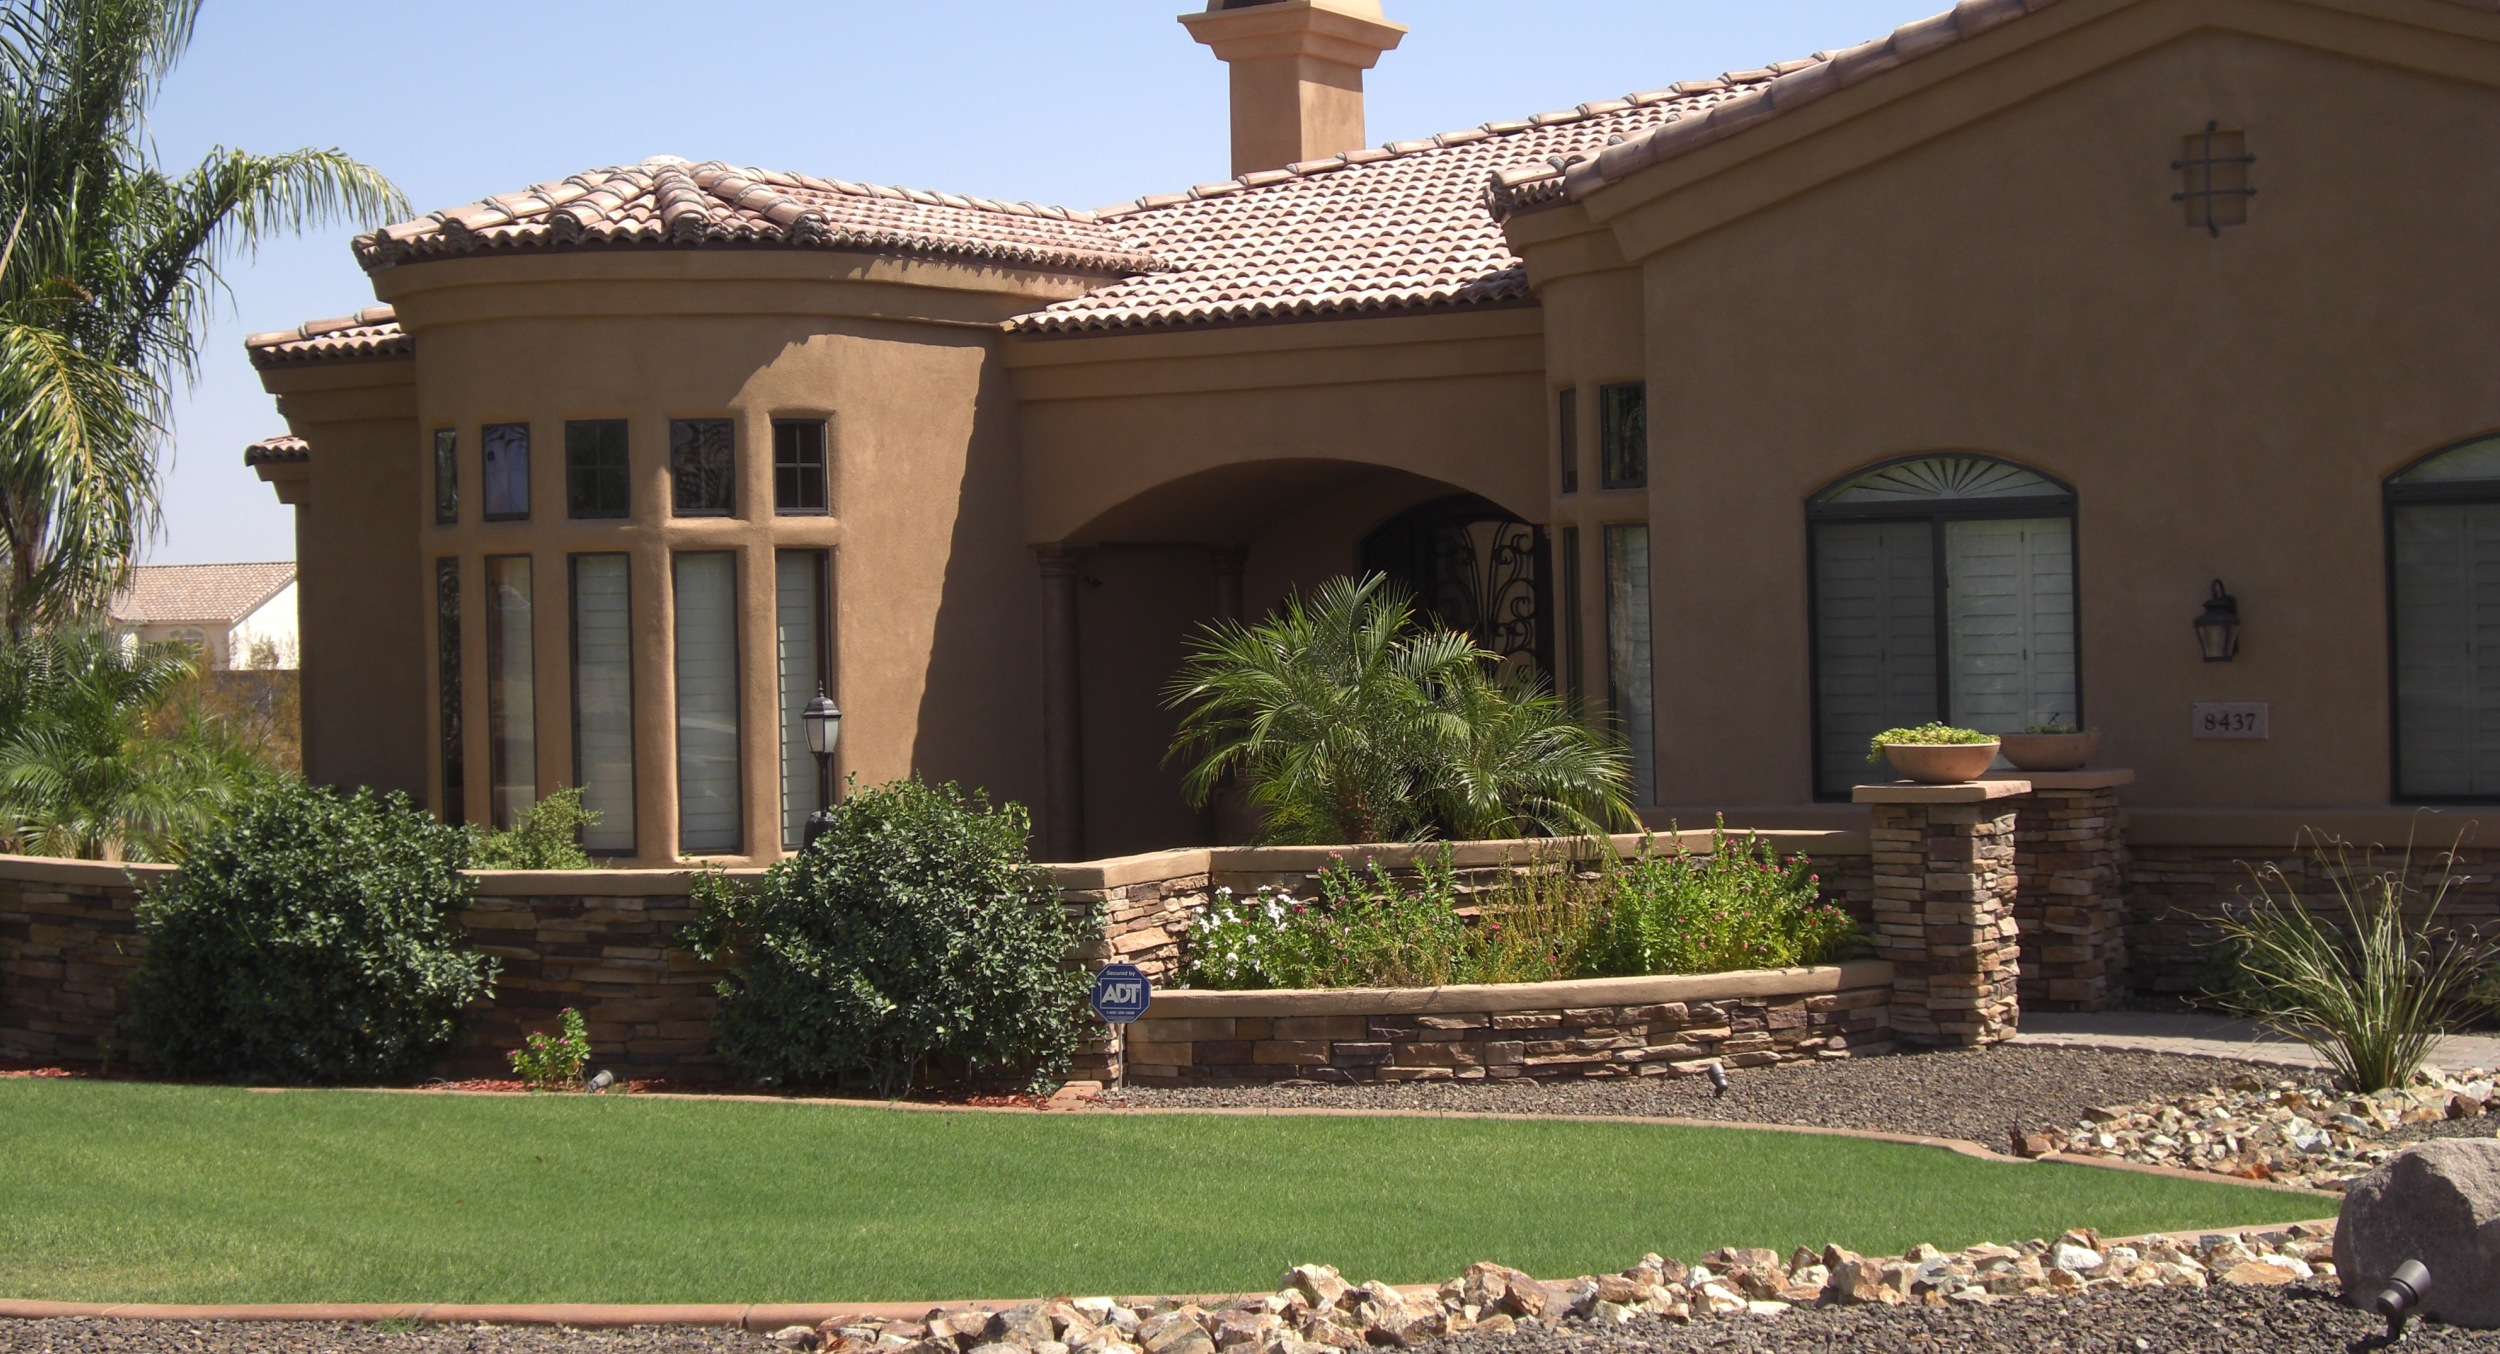 We are especially fond of grass here at Desert Crest, so this Glendale lawn's installation in front of our stone courtyard walls was pure pleasure. It makes our stone work look spectacular.